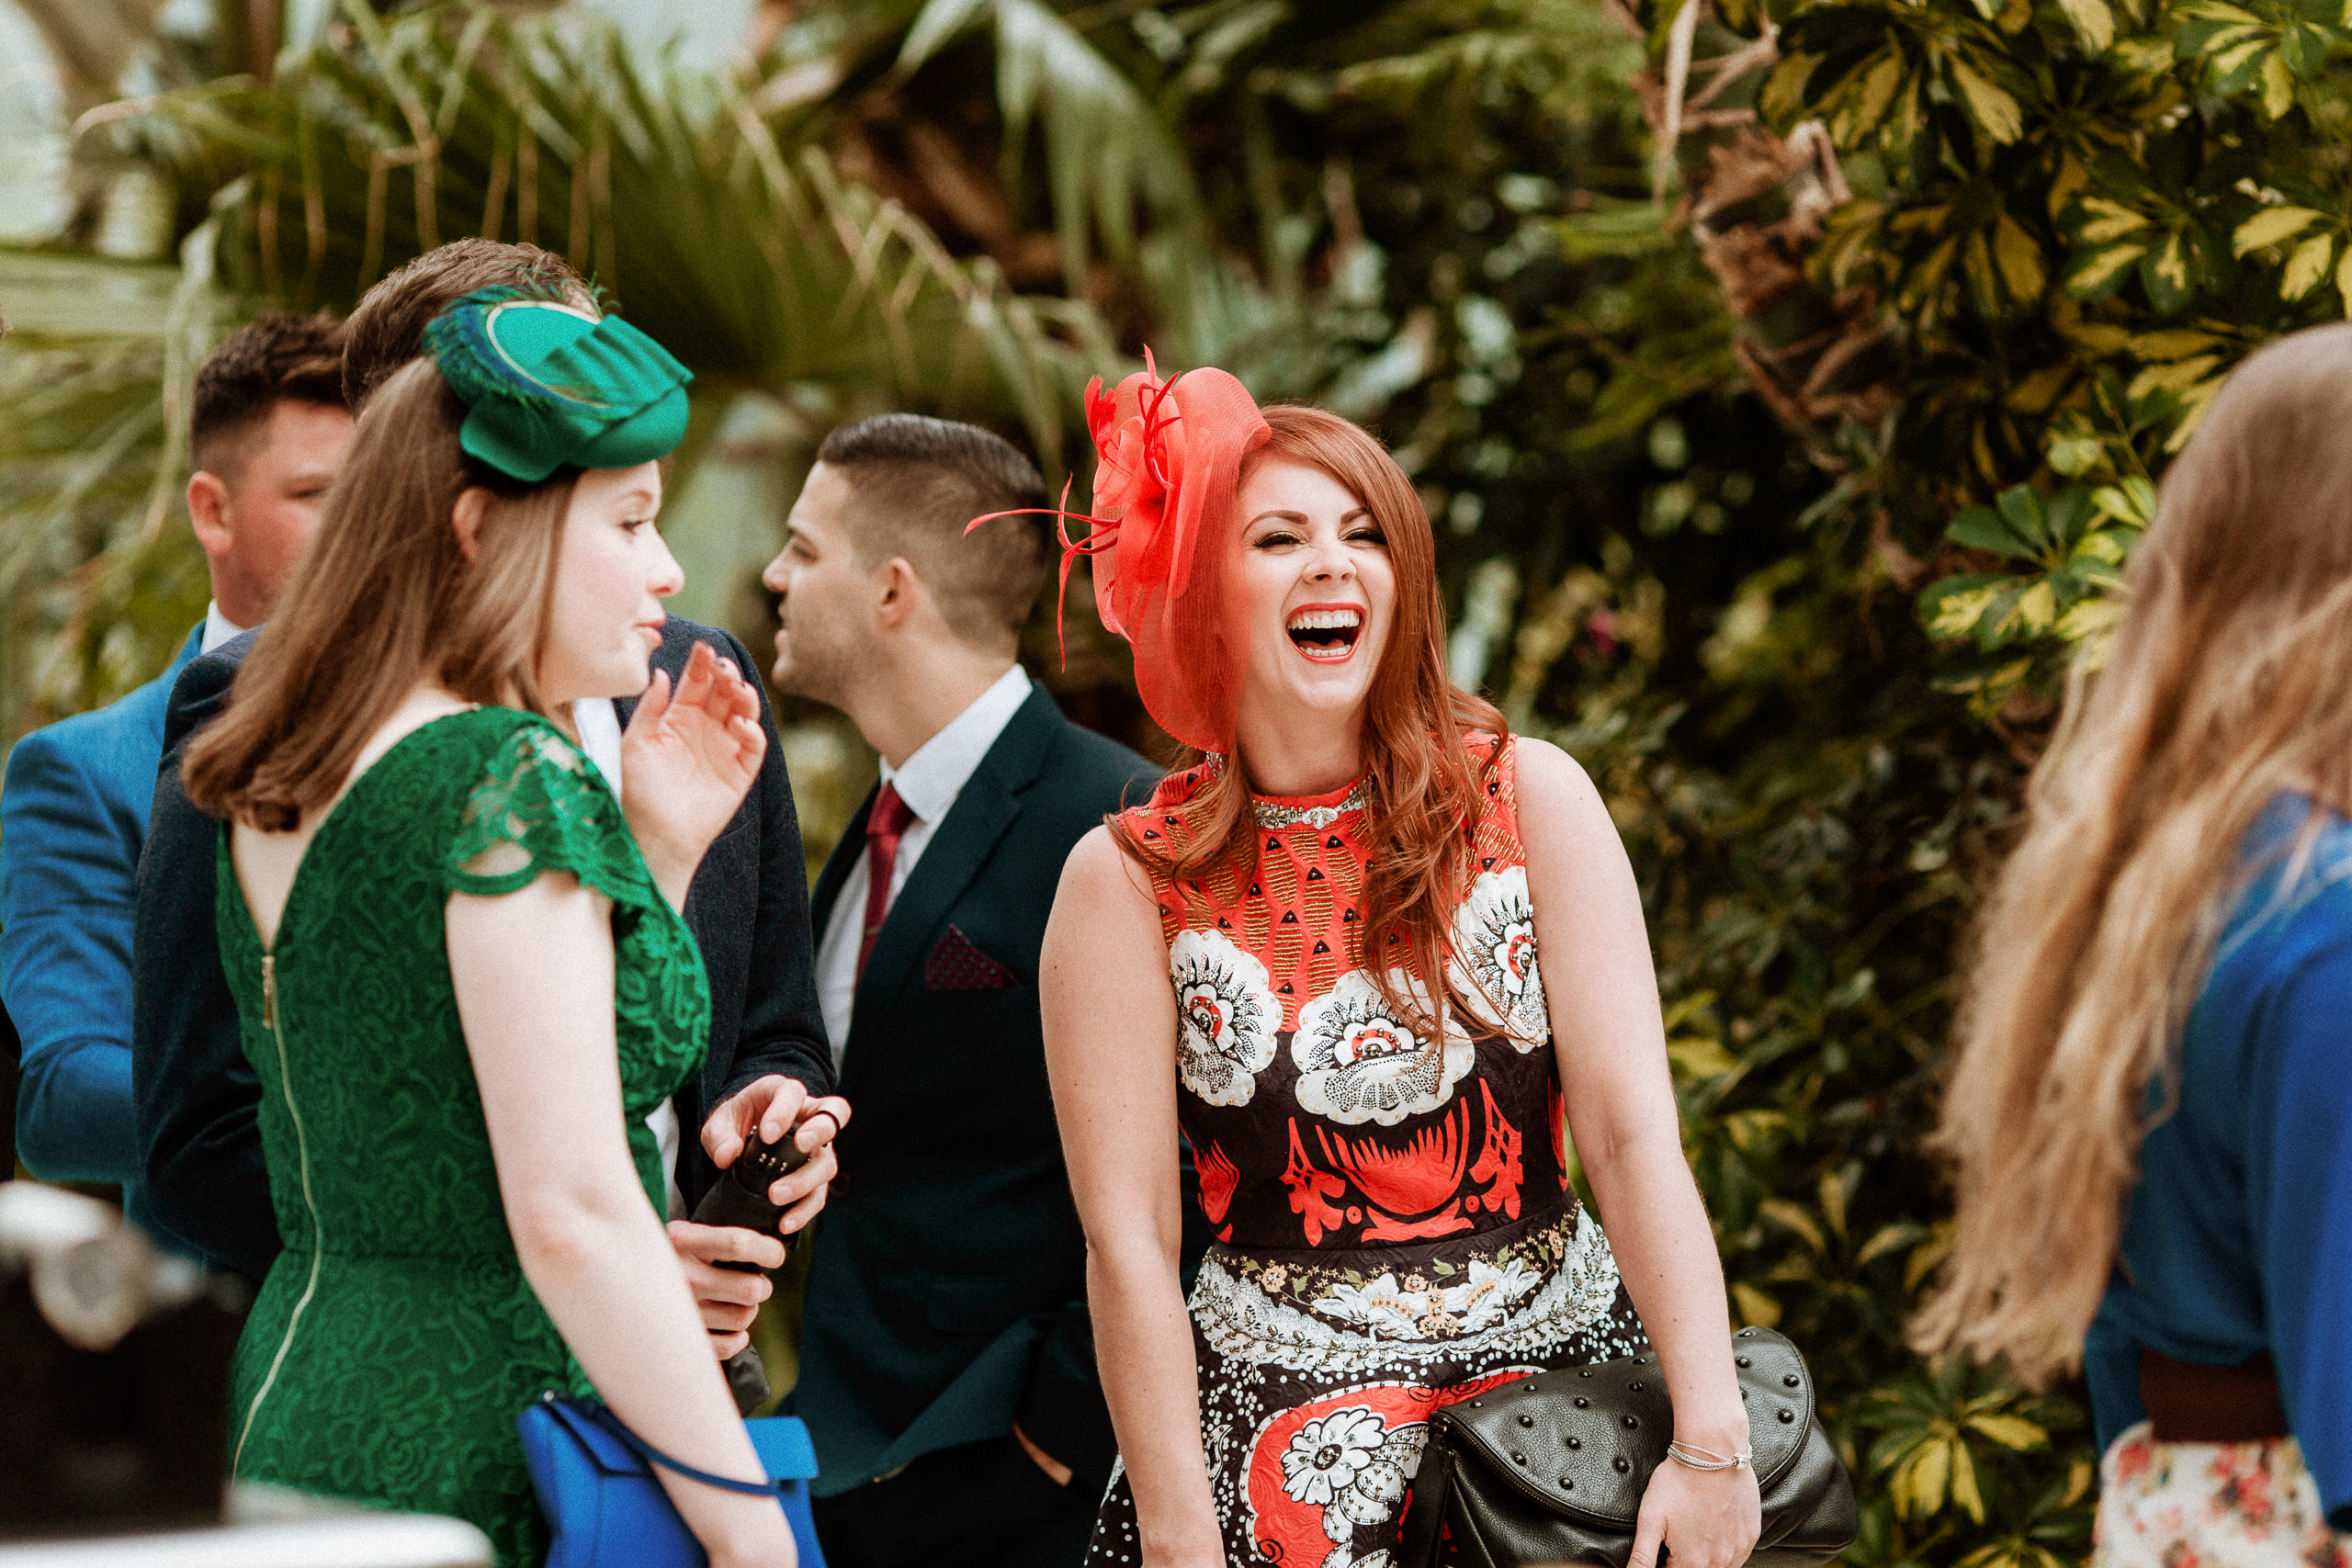 laughing wedding guest with red hair